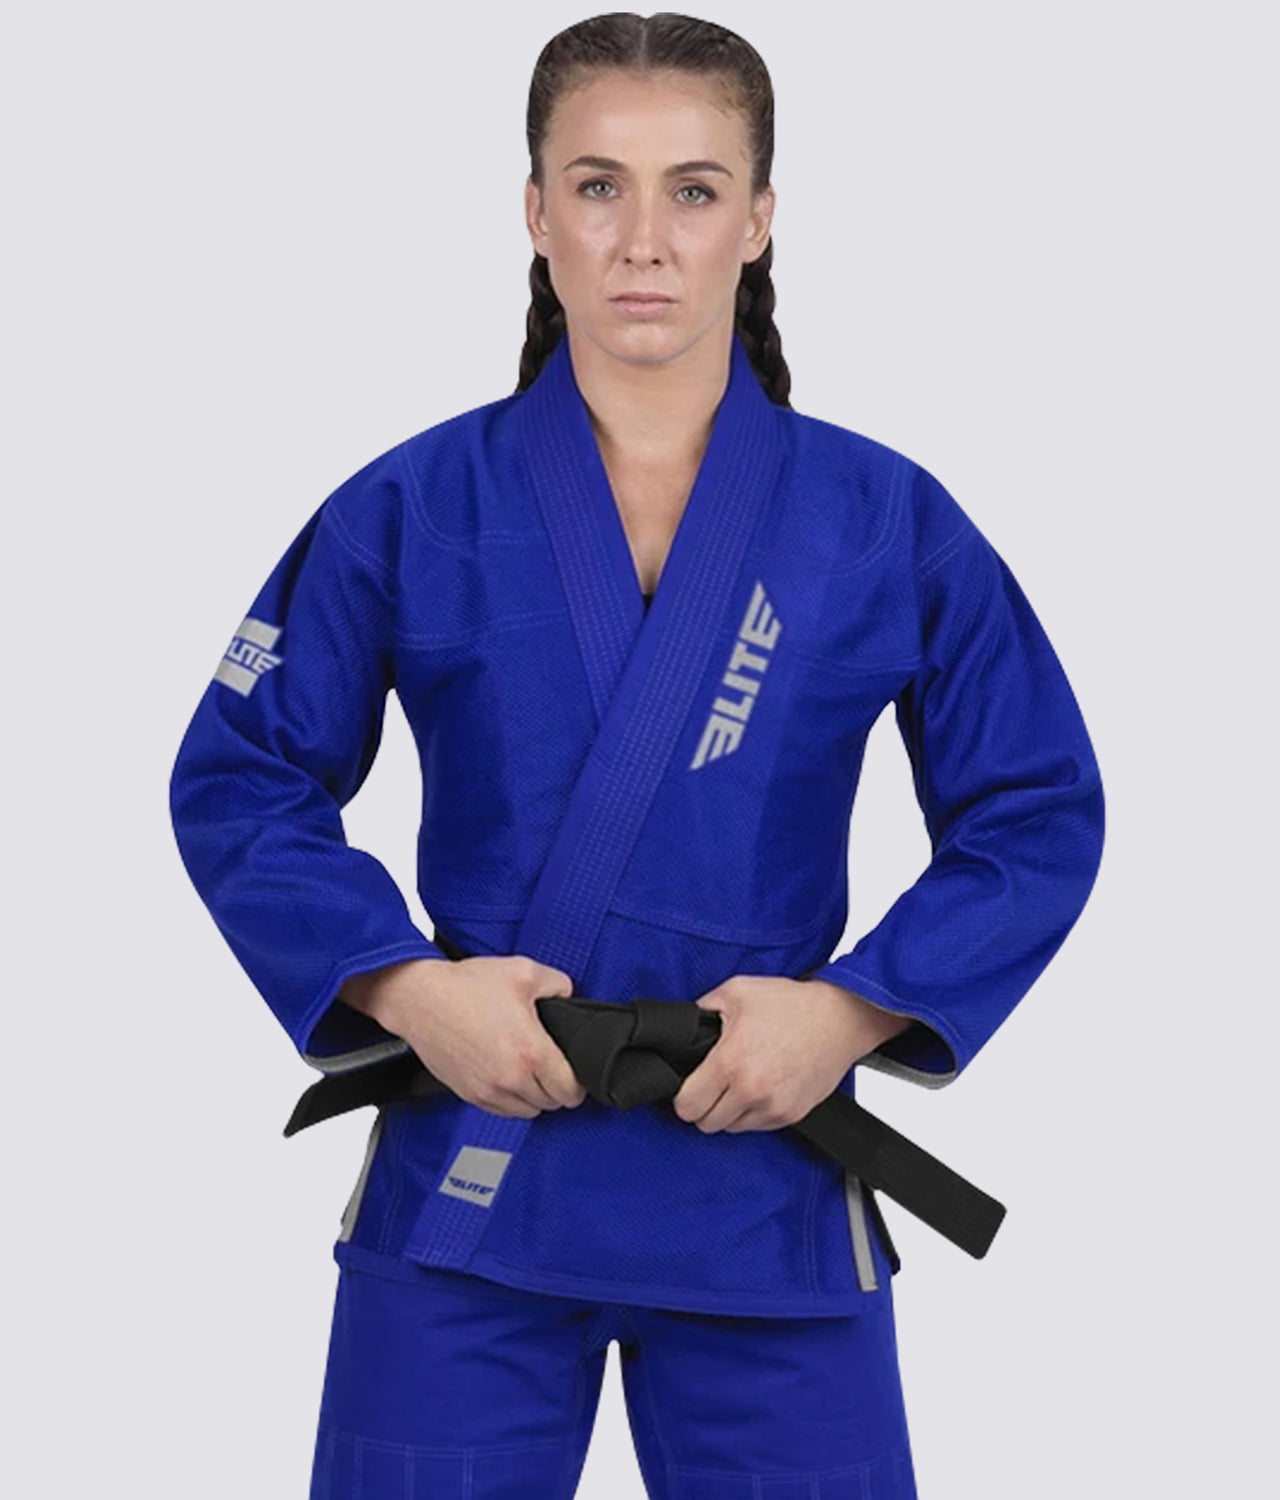 Elite Sports Lightweight Preshrunk Antibacterial Blue Women Brazilian Jiu Jitsu BJJ Gi With Free White Belt